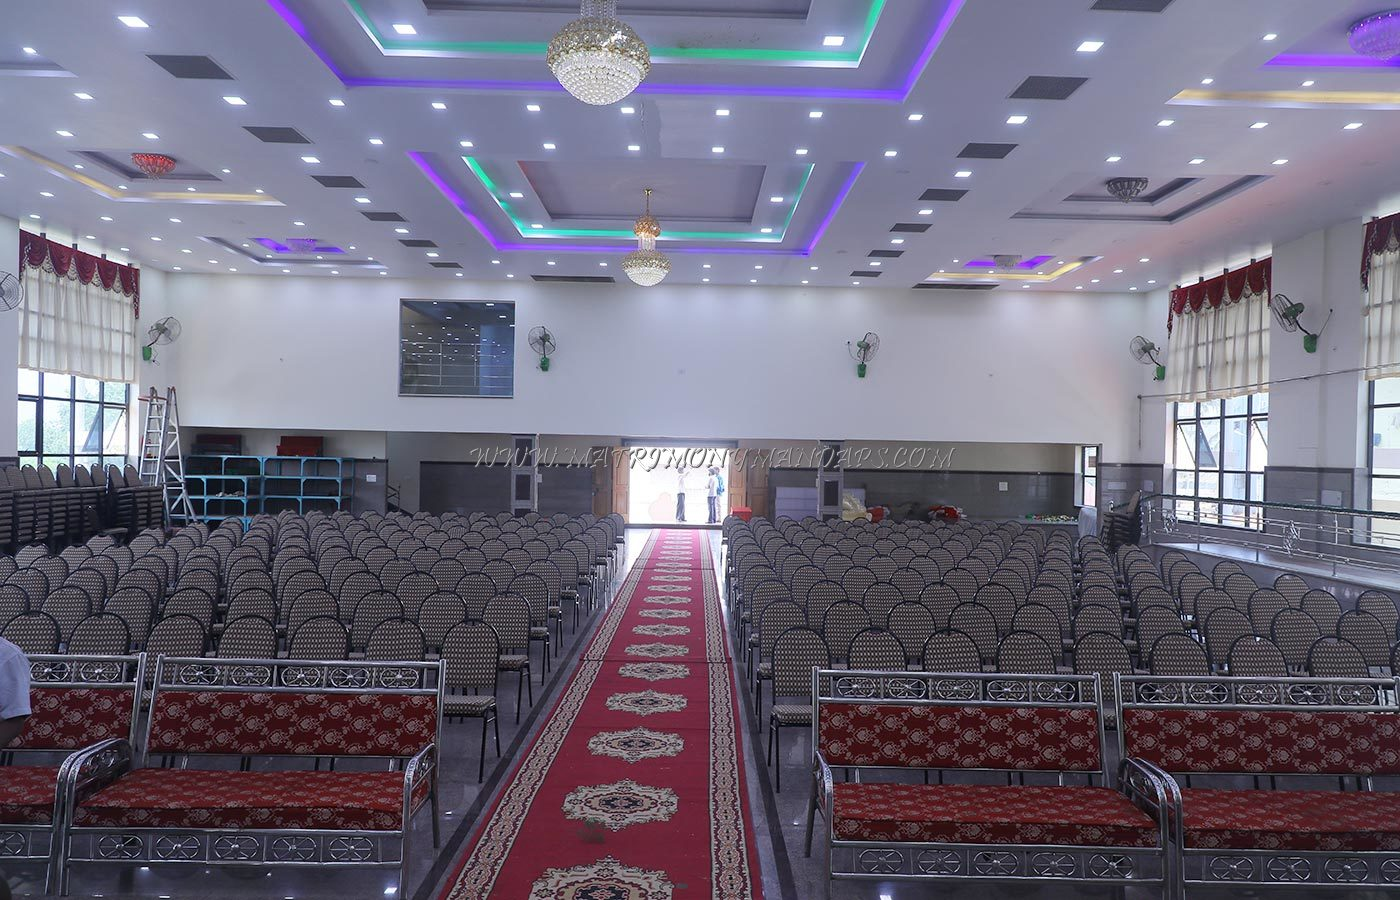 Find the availability of the Brundavana Convention Hall (A/C) in magadi road, Bangalore and avail special offers